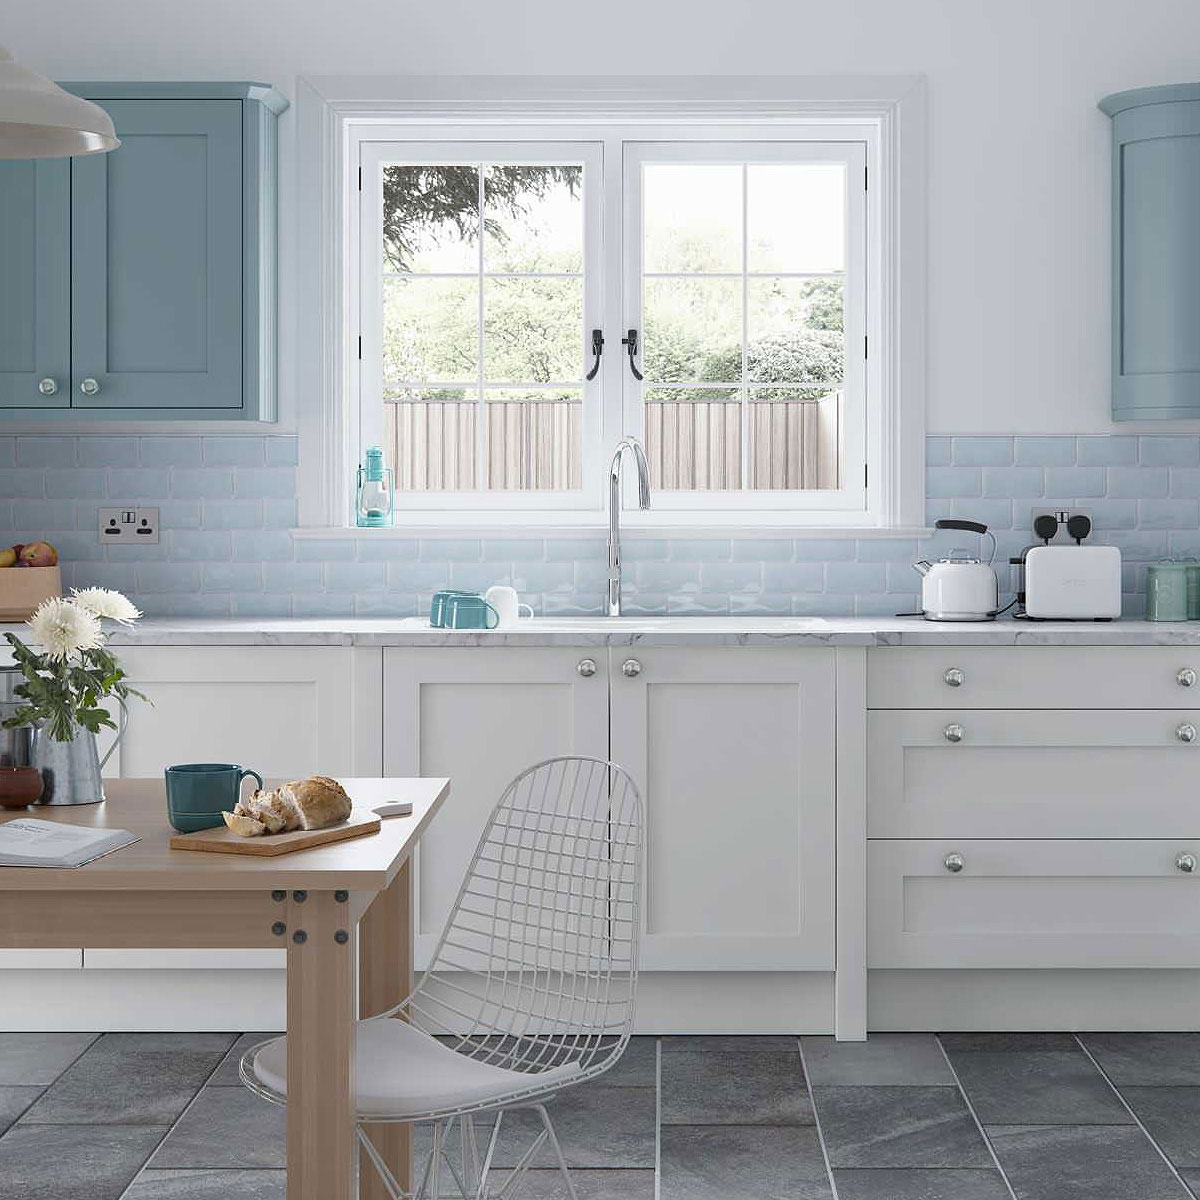 75 Blue Backsplash Ideas Navy Aqua Royal Or Coastal